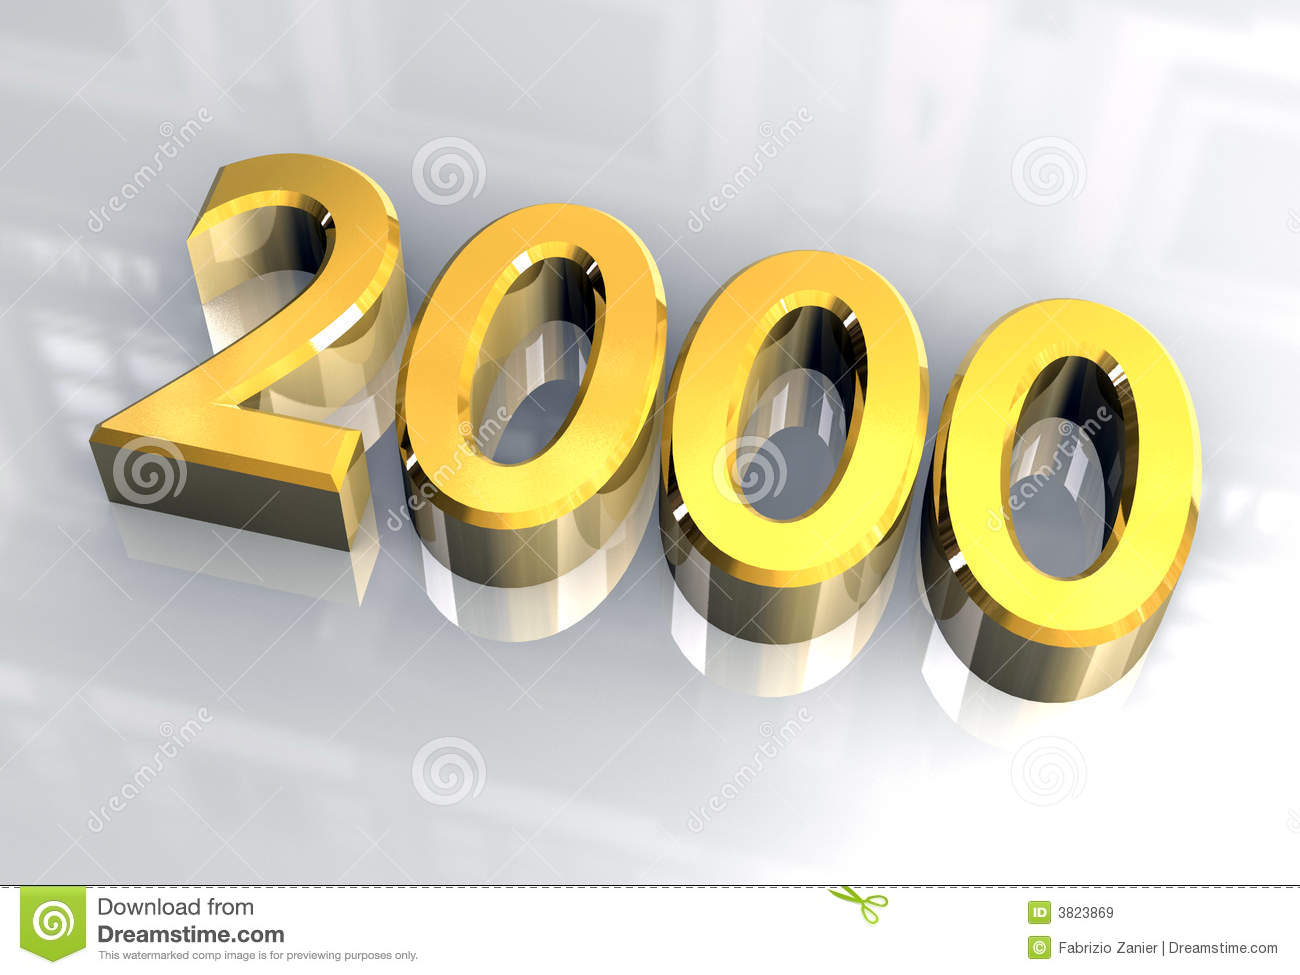 New year 2000 in gold (3D)